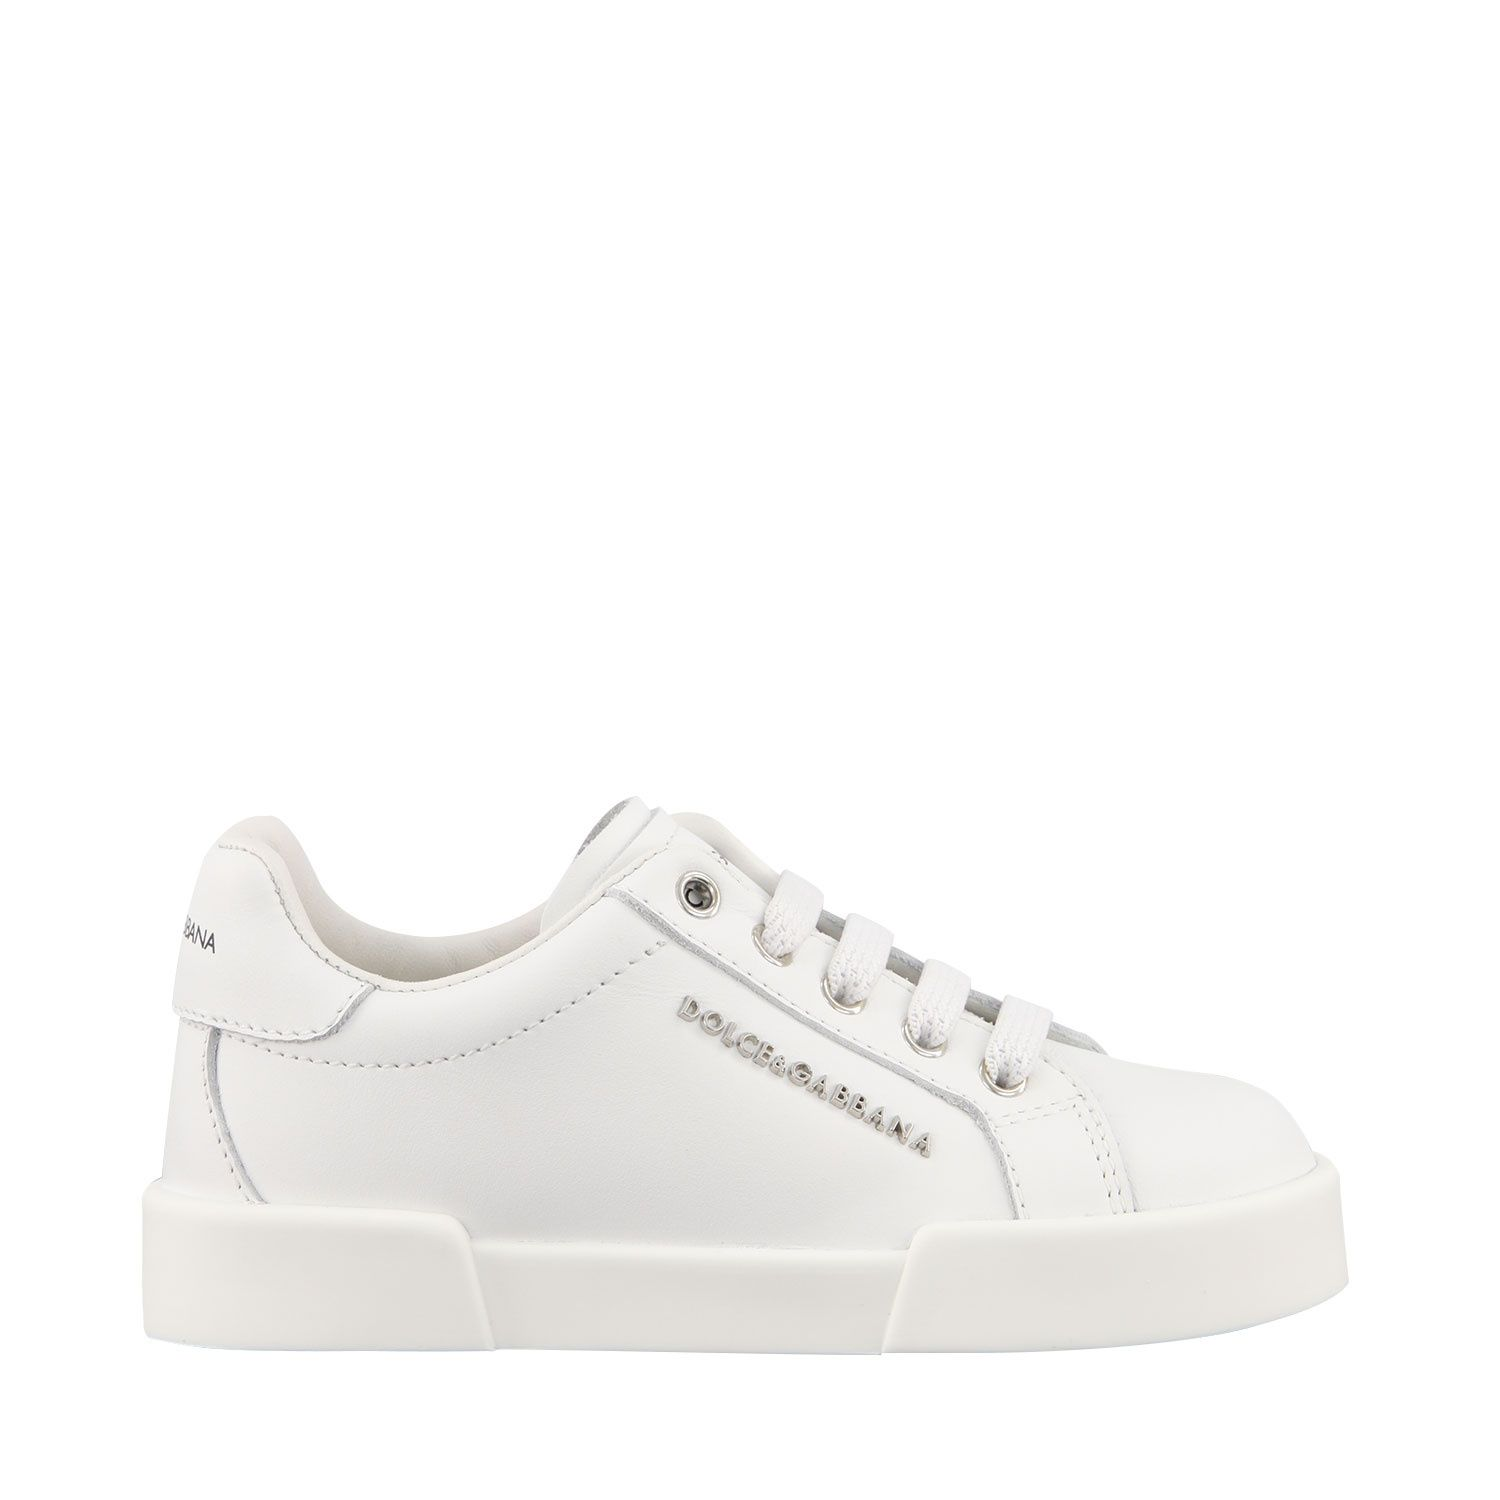 Picture of Dolce & Gabbana DN0134 A3444 kids sneakers white